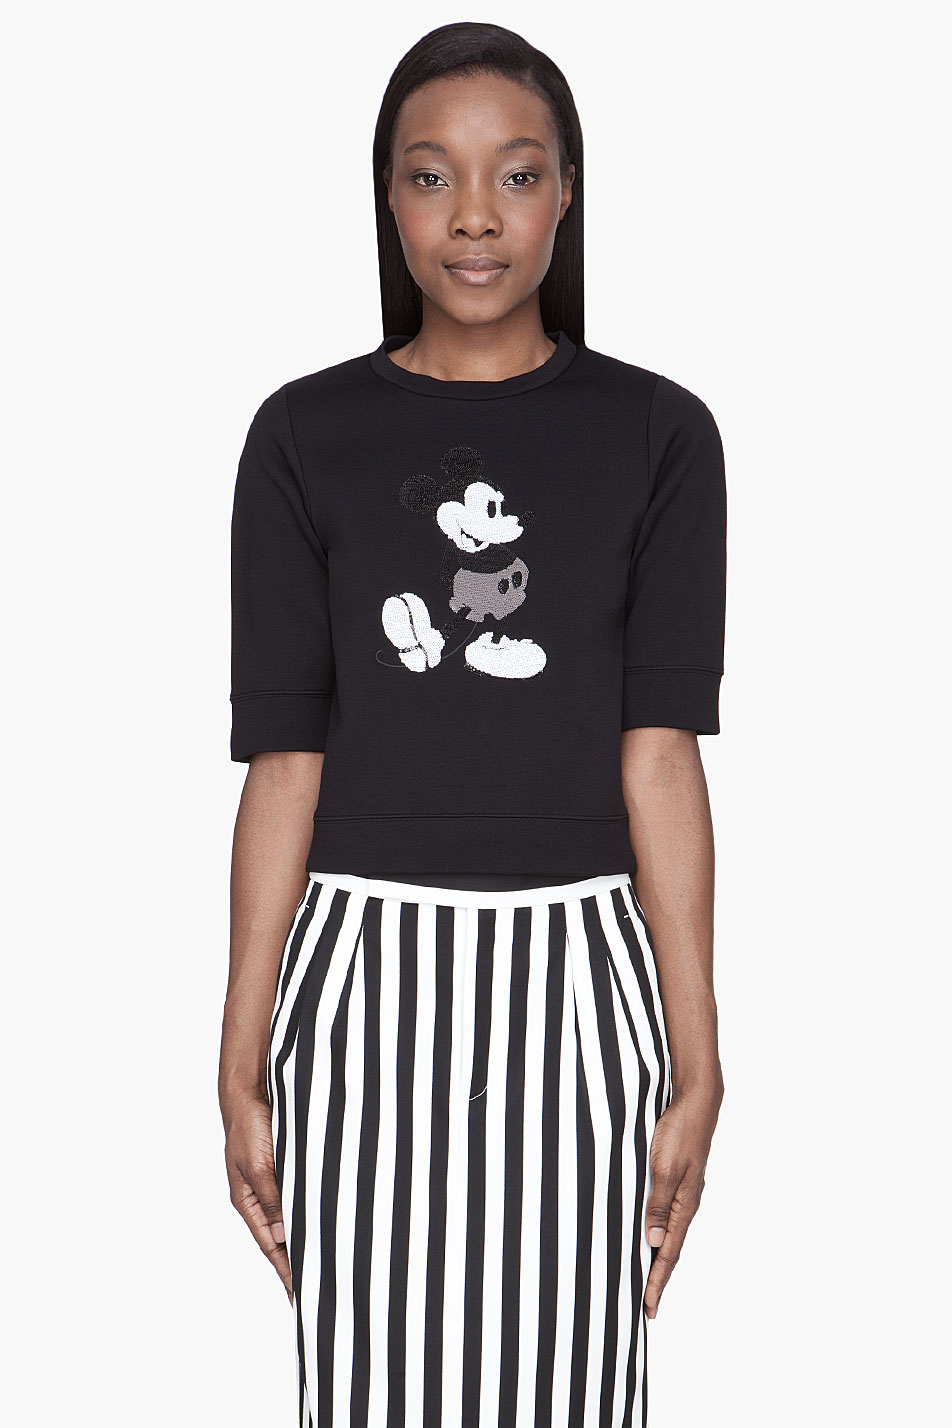 Marc Jacobs Black Sequined Mickey Mouse Sweater Lyst